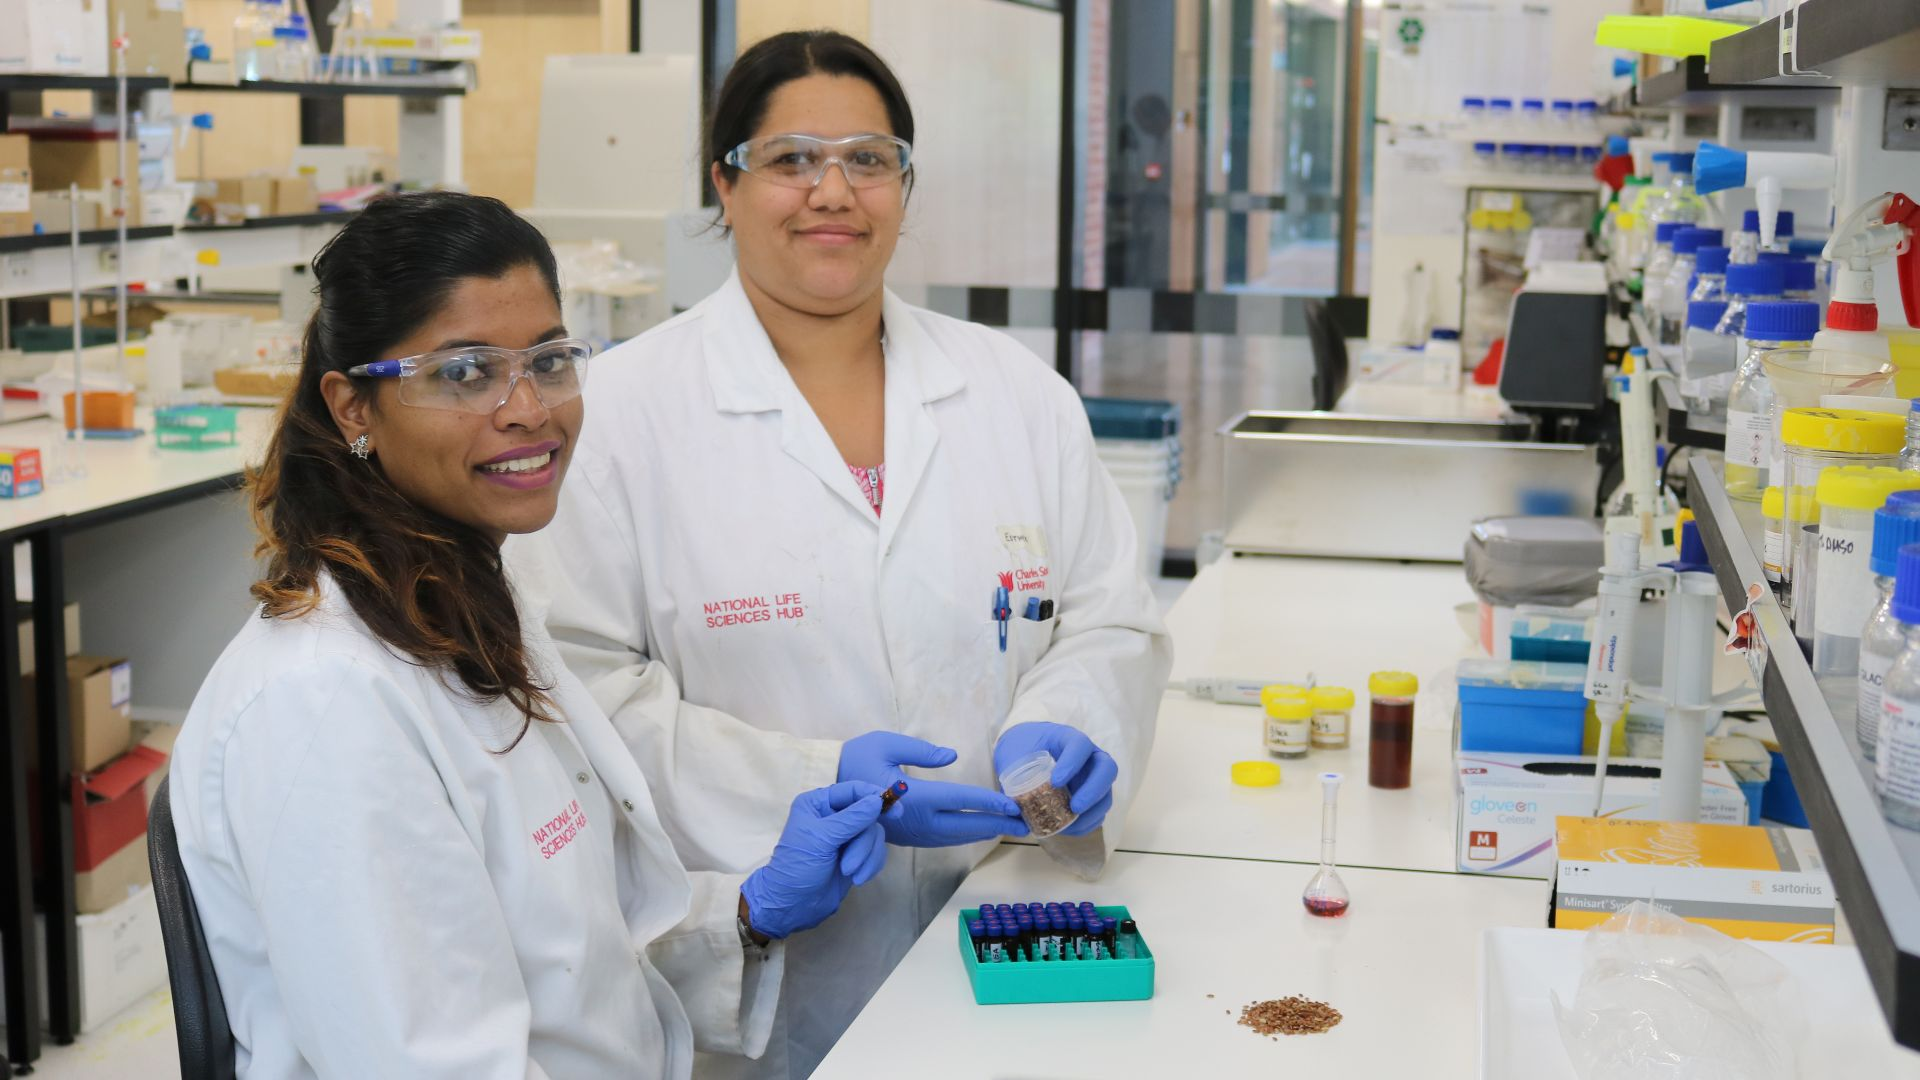 Celebrating research to benefit the grains industry and human health